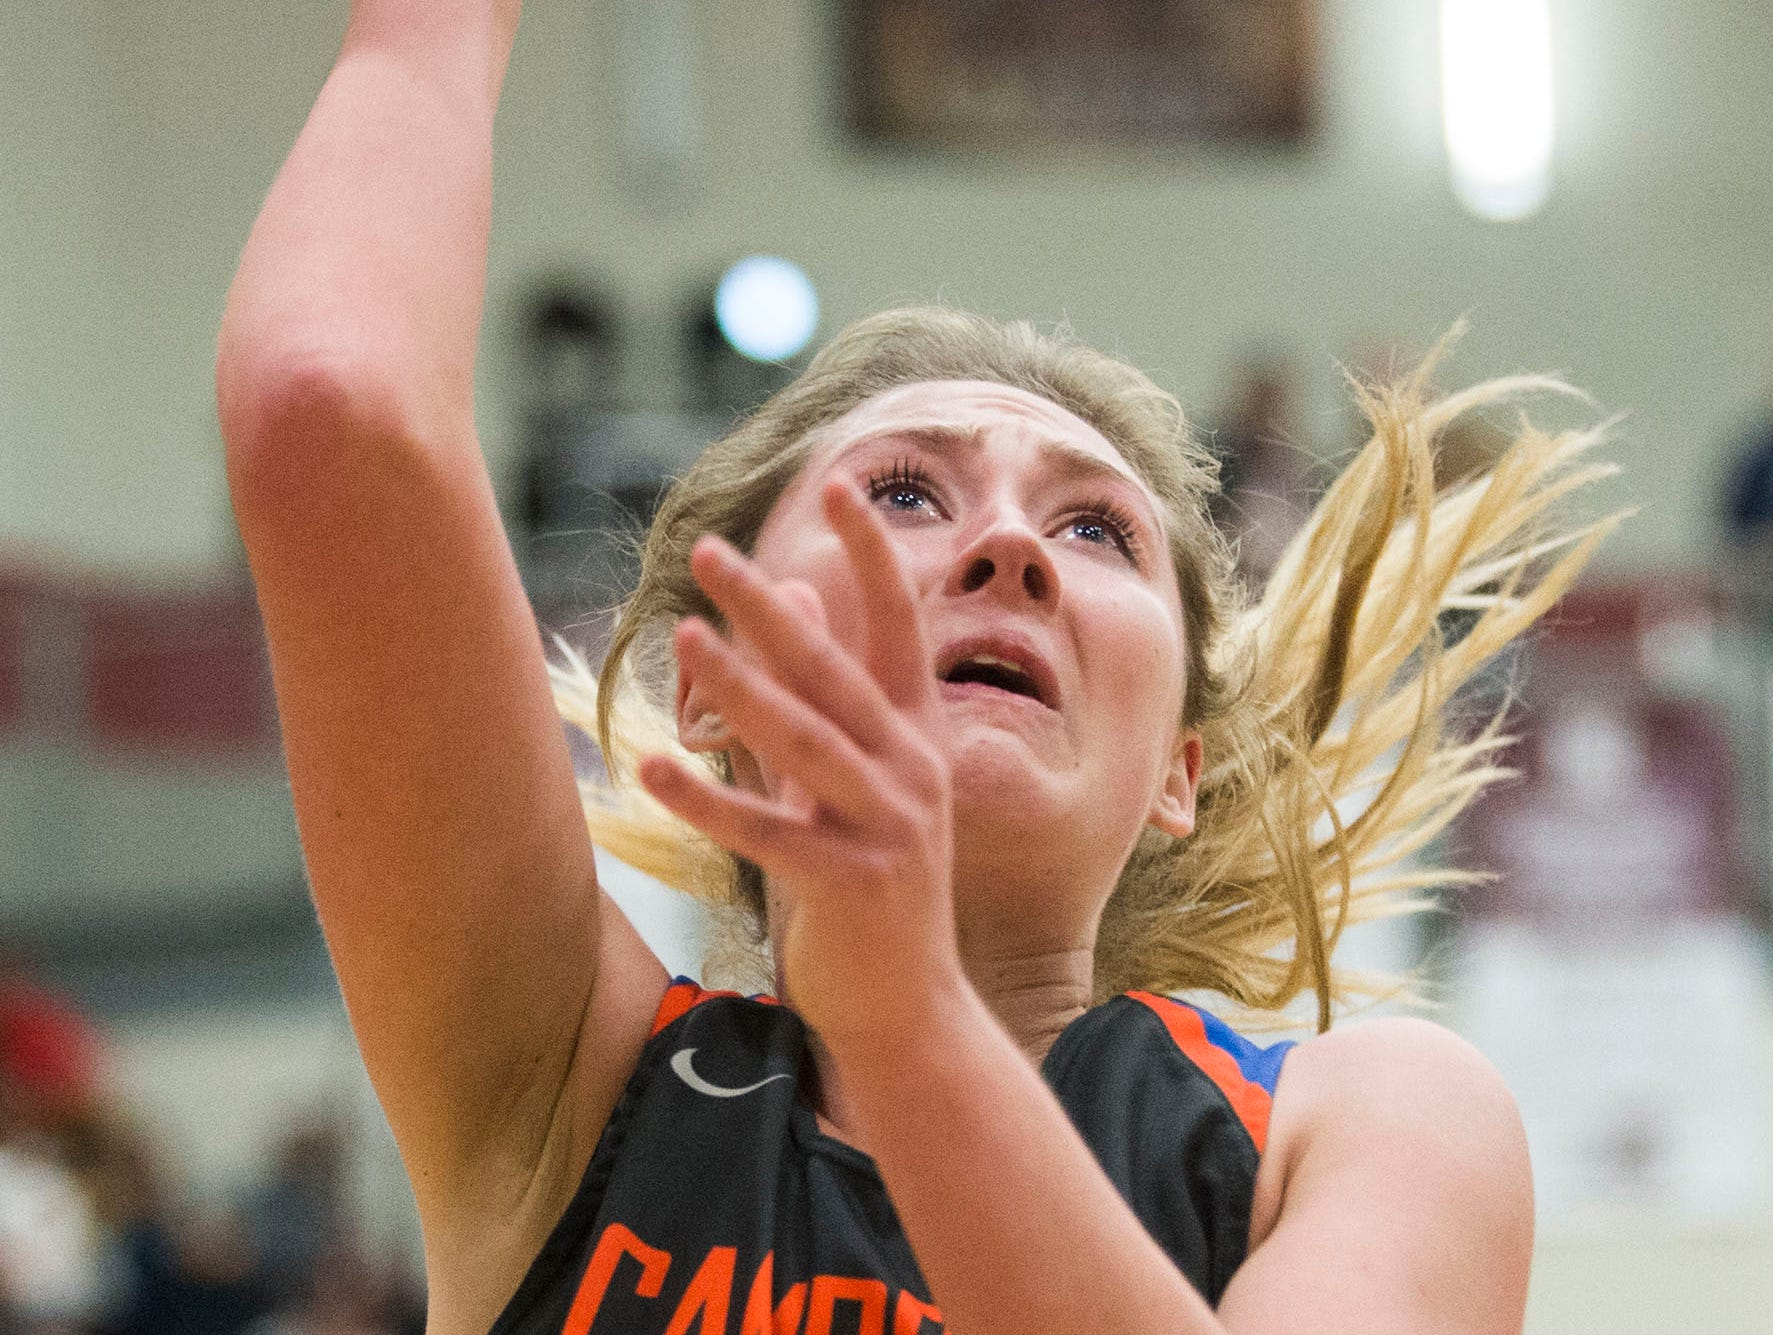 Campbell County's Skylar Boshears (32) takes a shot during a high school basketball game between Oak Ridge and Campbell County at Oak Ridge Friday, Feb. 1, 2019.